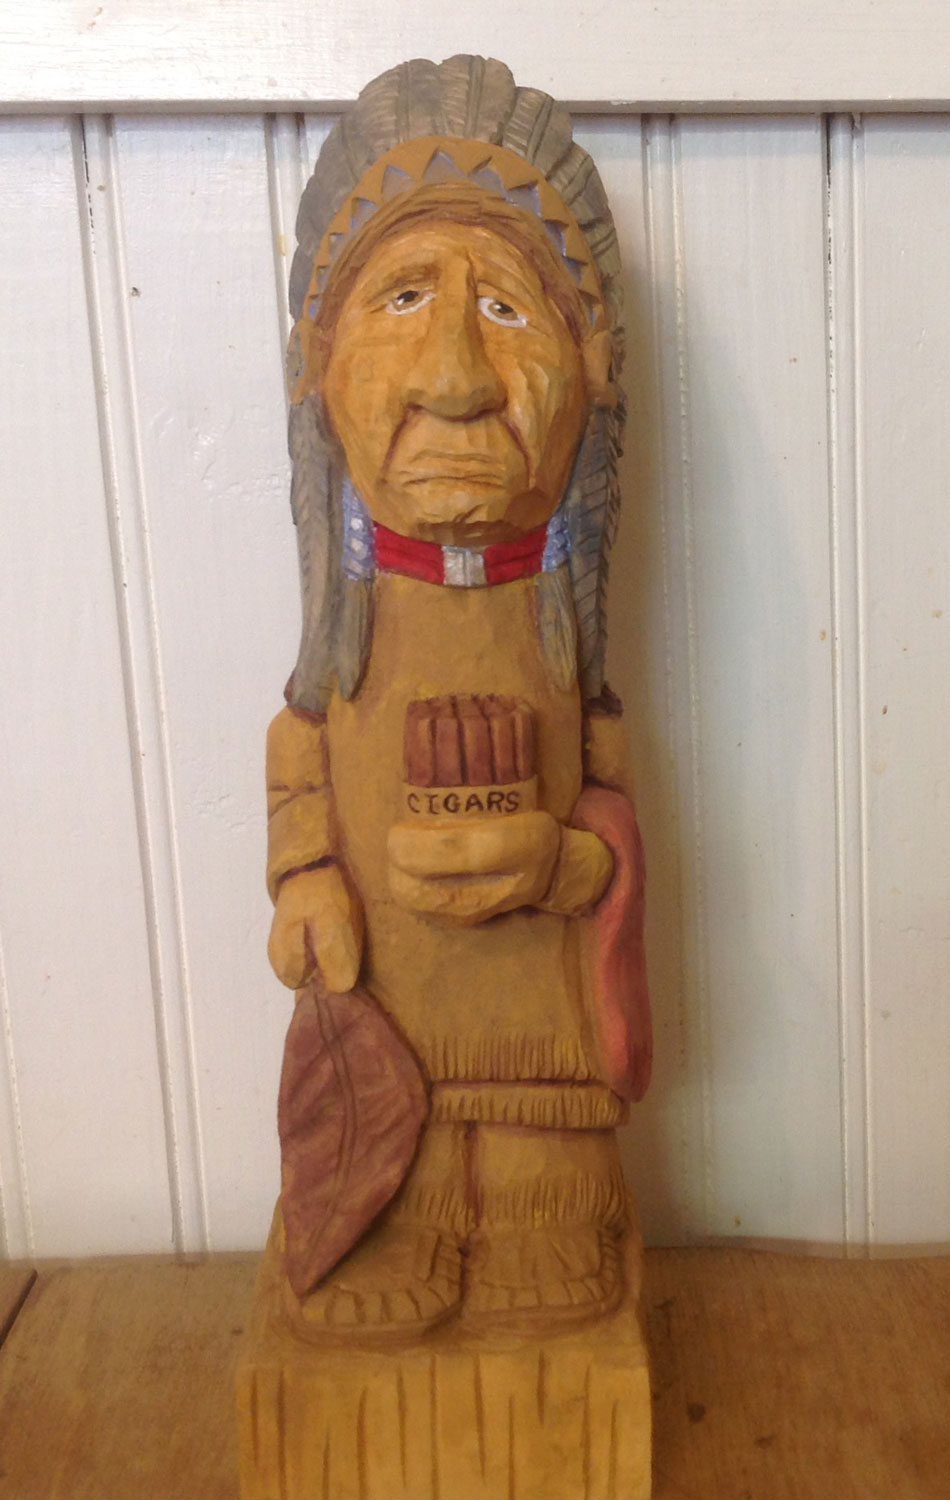 "Cigar Store Indian, Basswood & acrylic, 10"" tall"